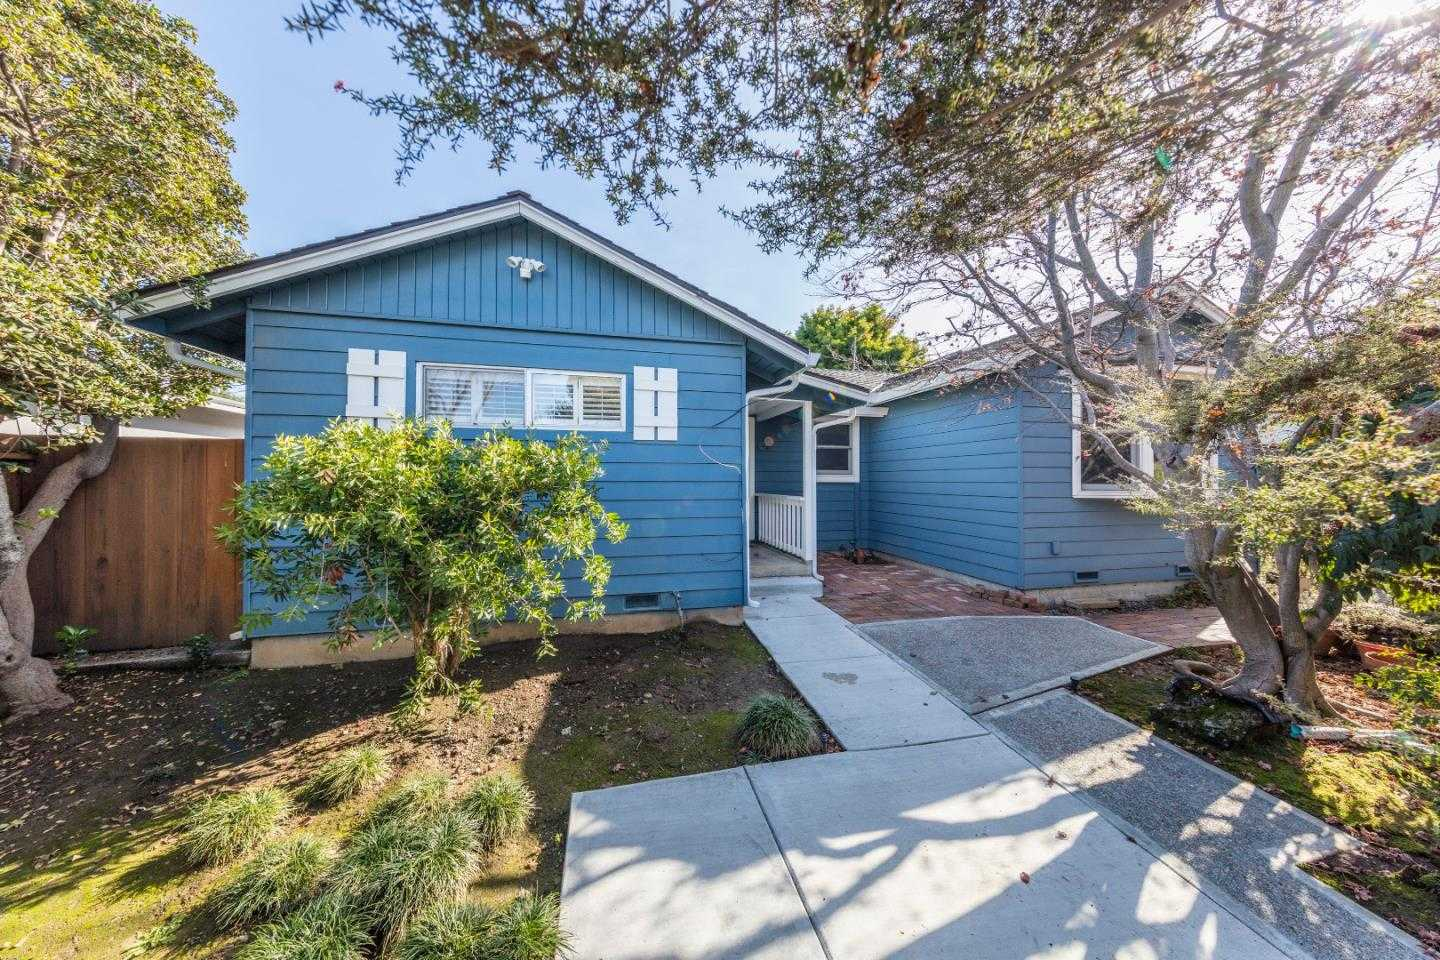 $1,900,000 - 3Br/2Ba -  for Sale in Sunnyvale